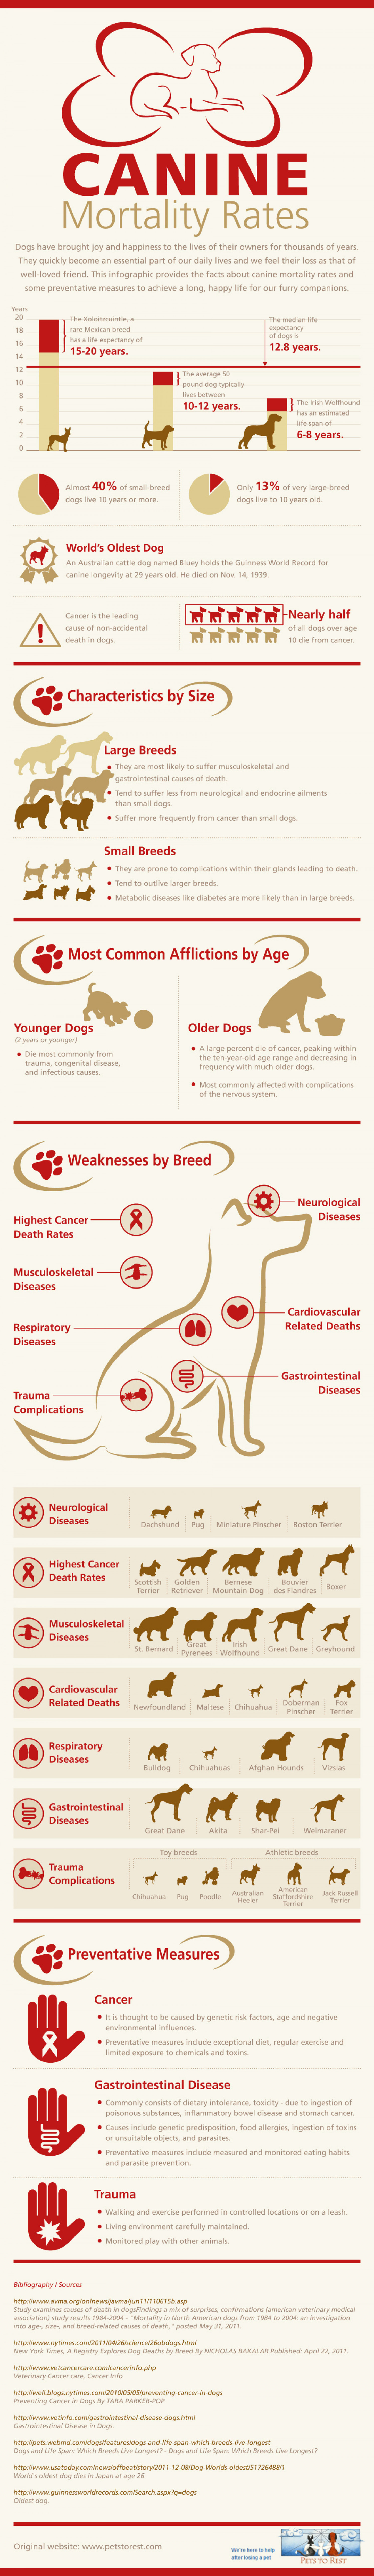 Canine Mortality Rates Infographic